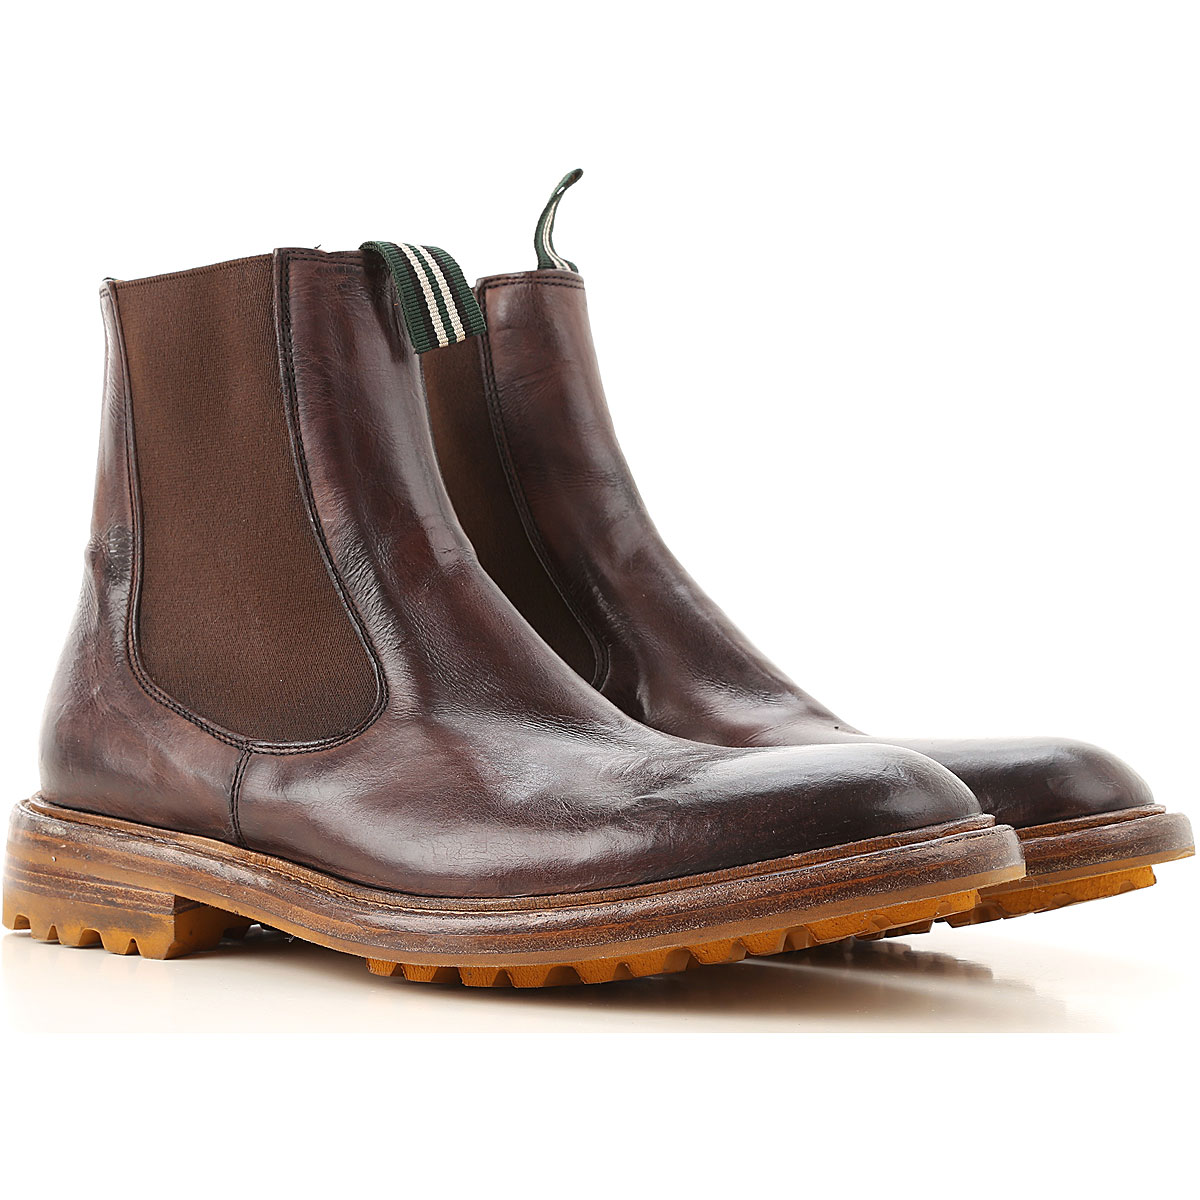 Green George Boots for Men Booties On Sale in Outlet USA - GOOFASH